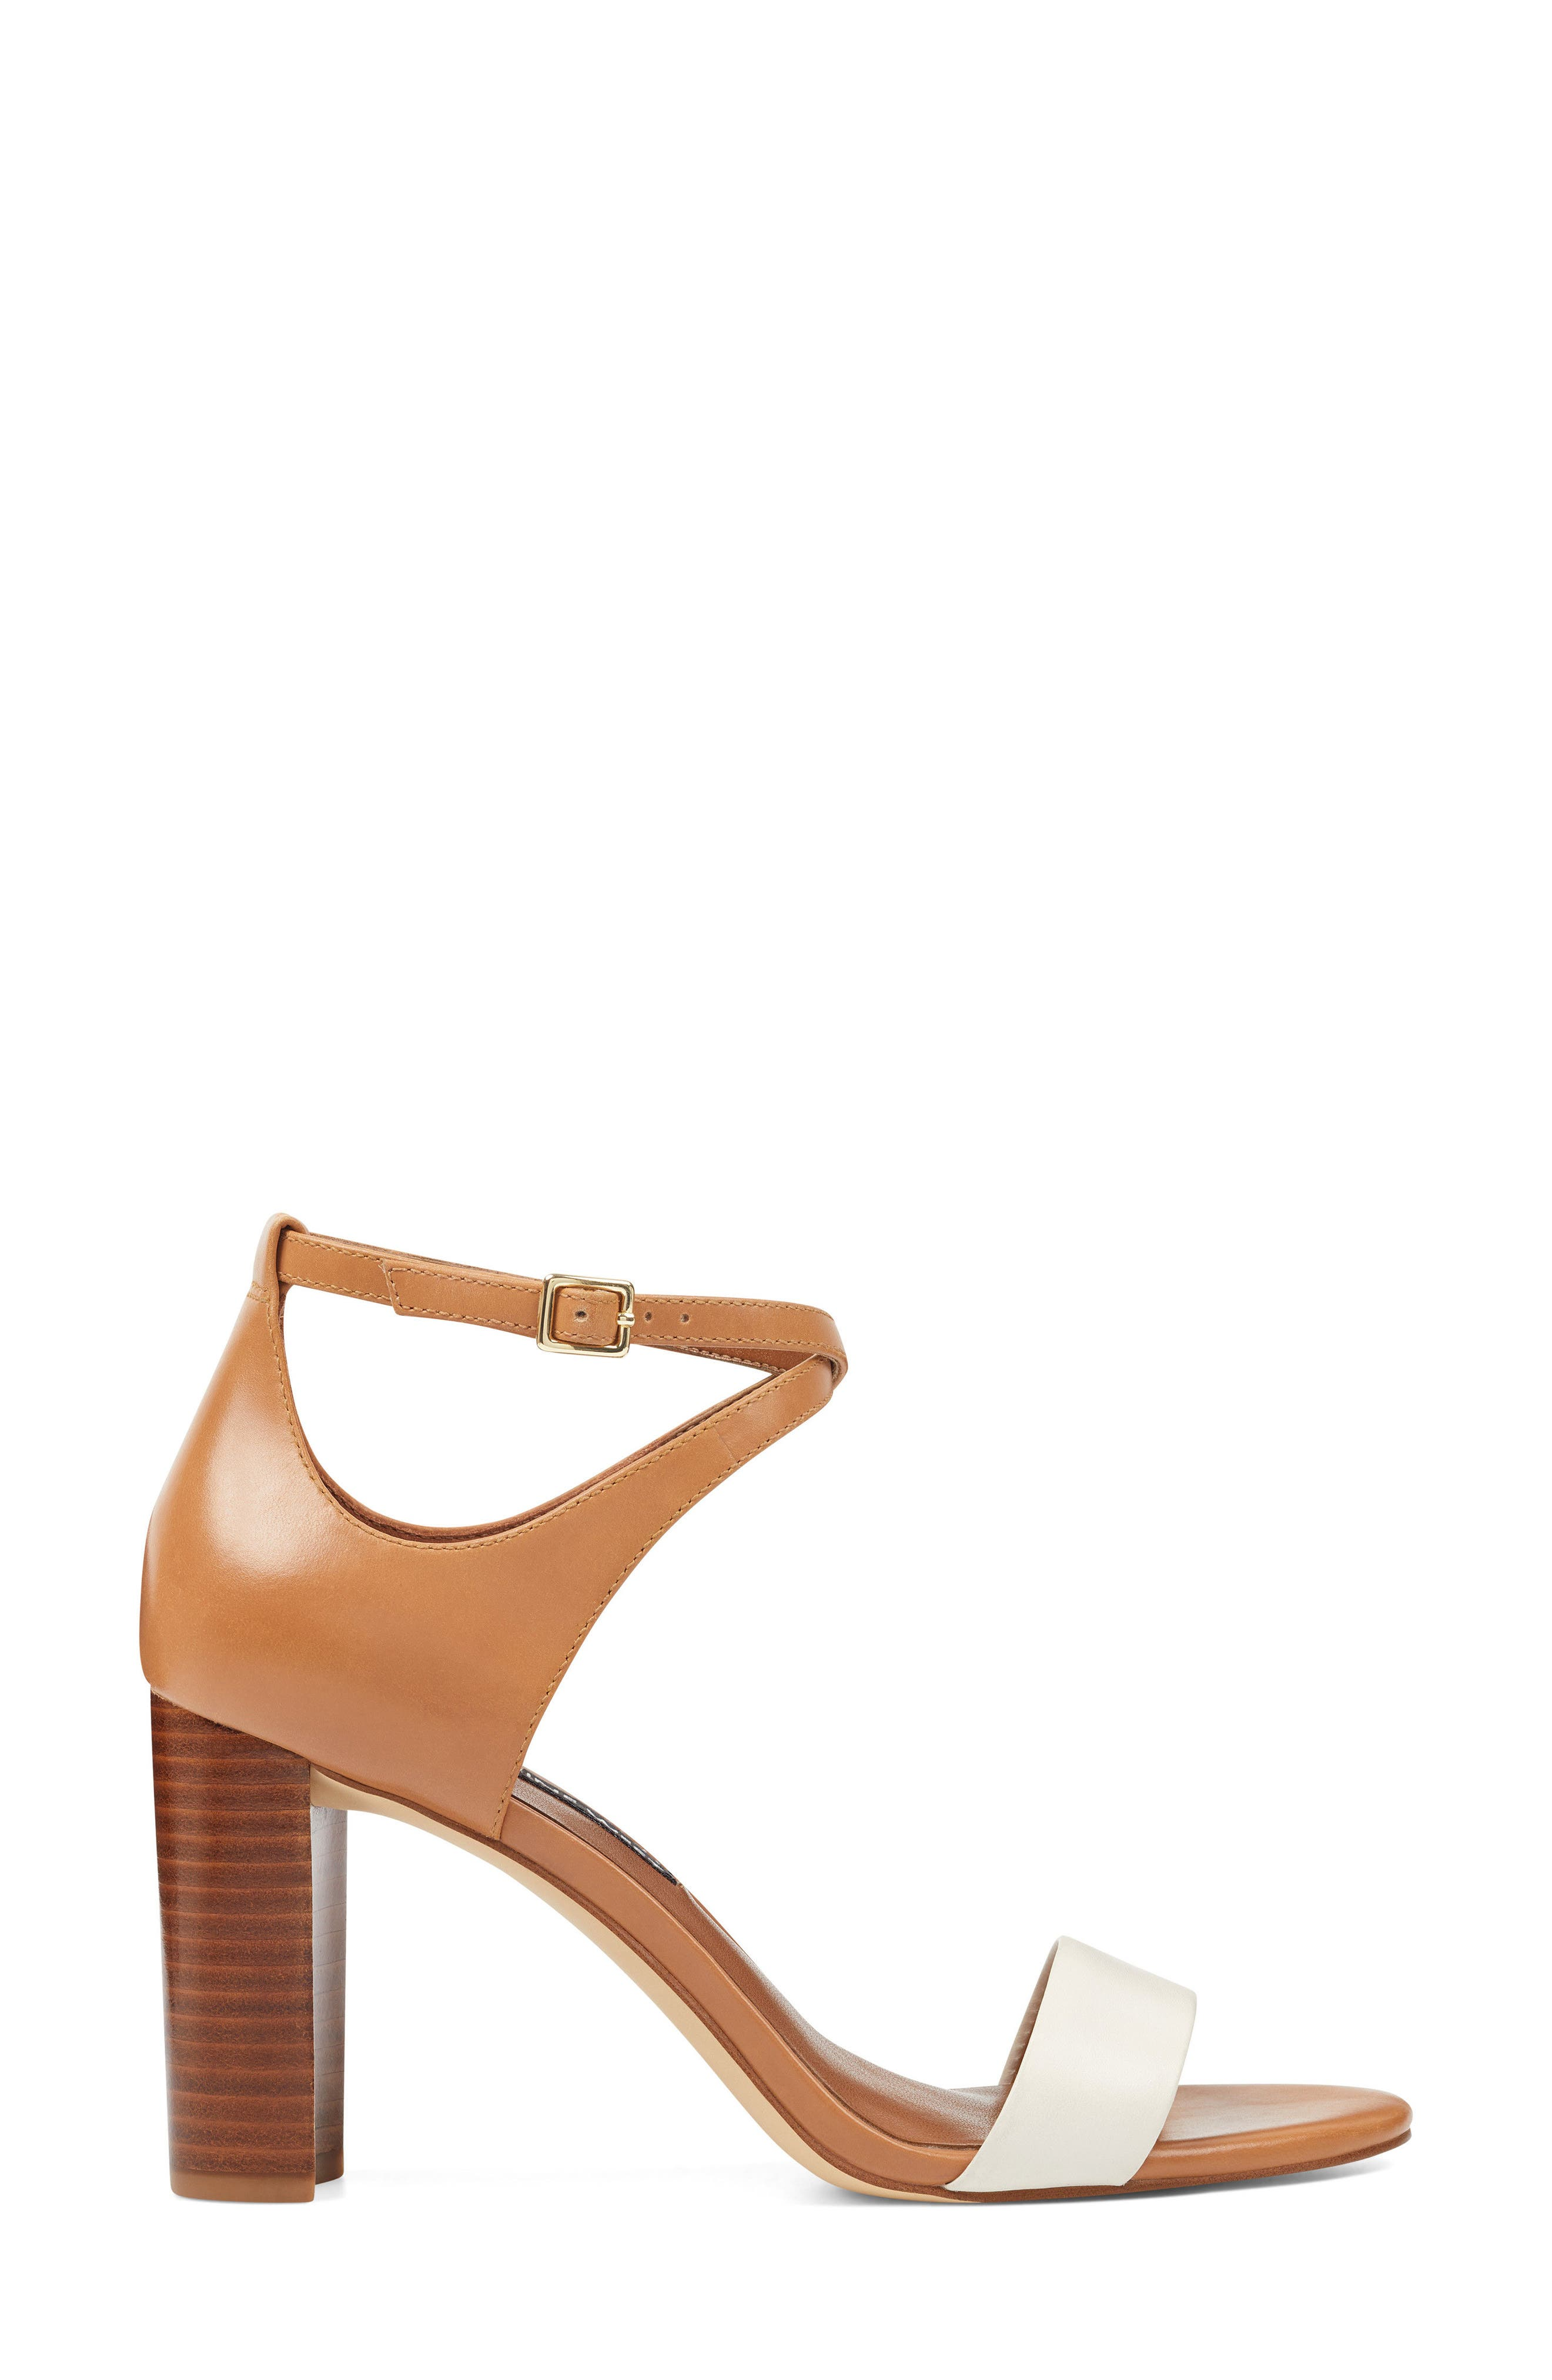 Nunzaya Ankle Strap Sandal,                             Alternate thumbnail 3, color,                             OFF WHITE/ NATURAL LEATHER